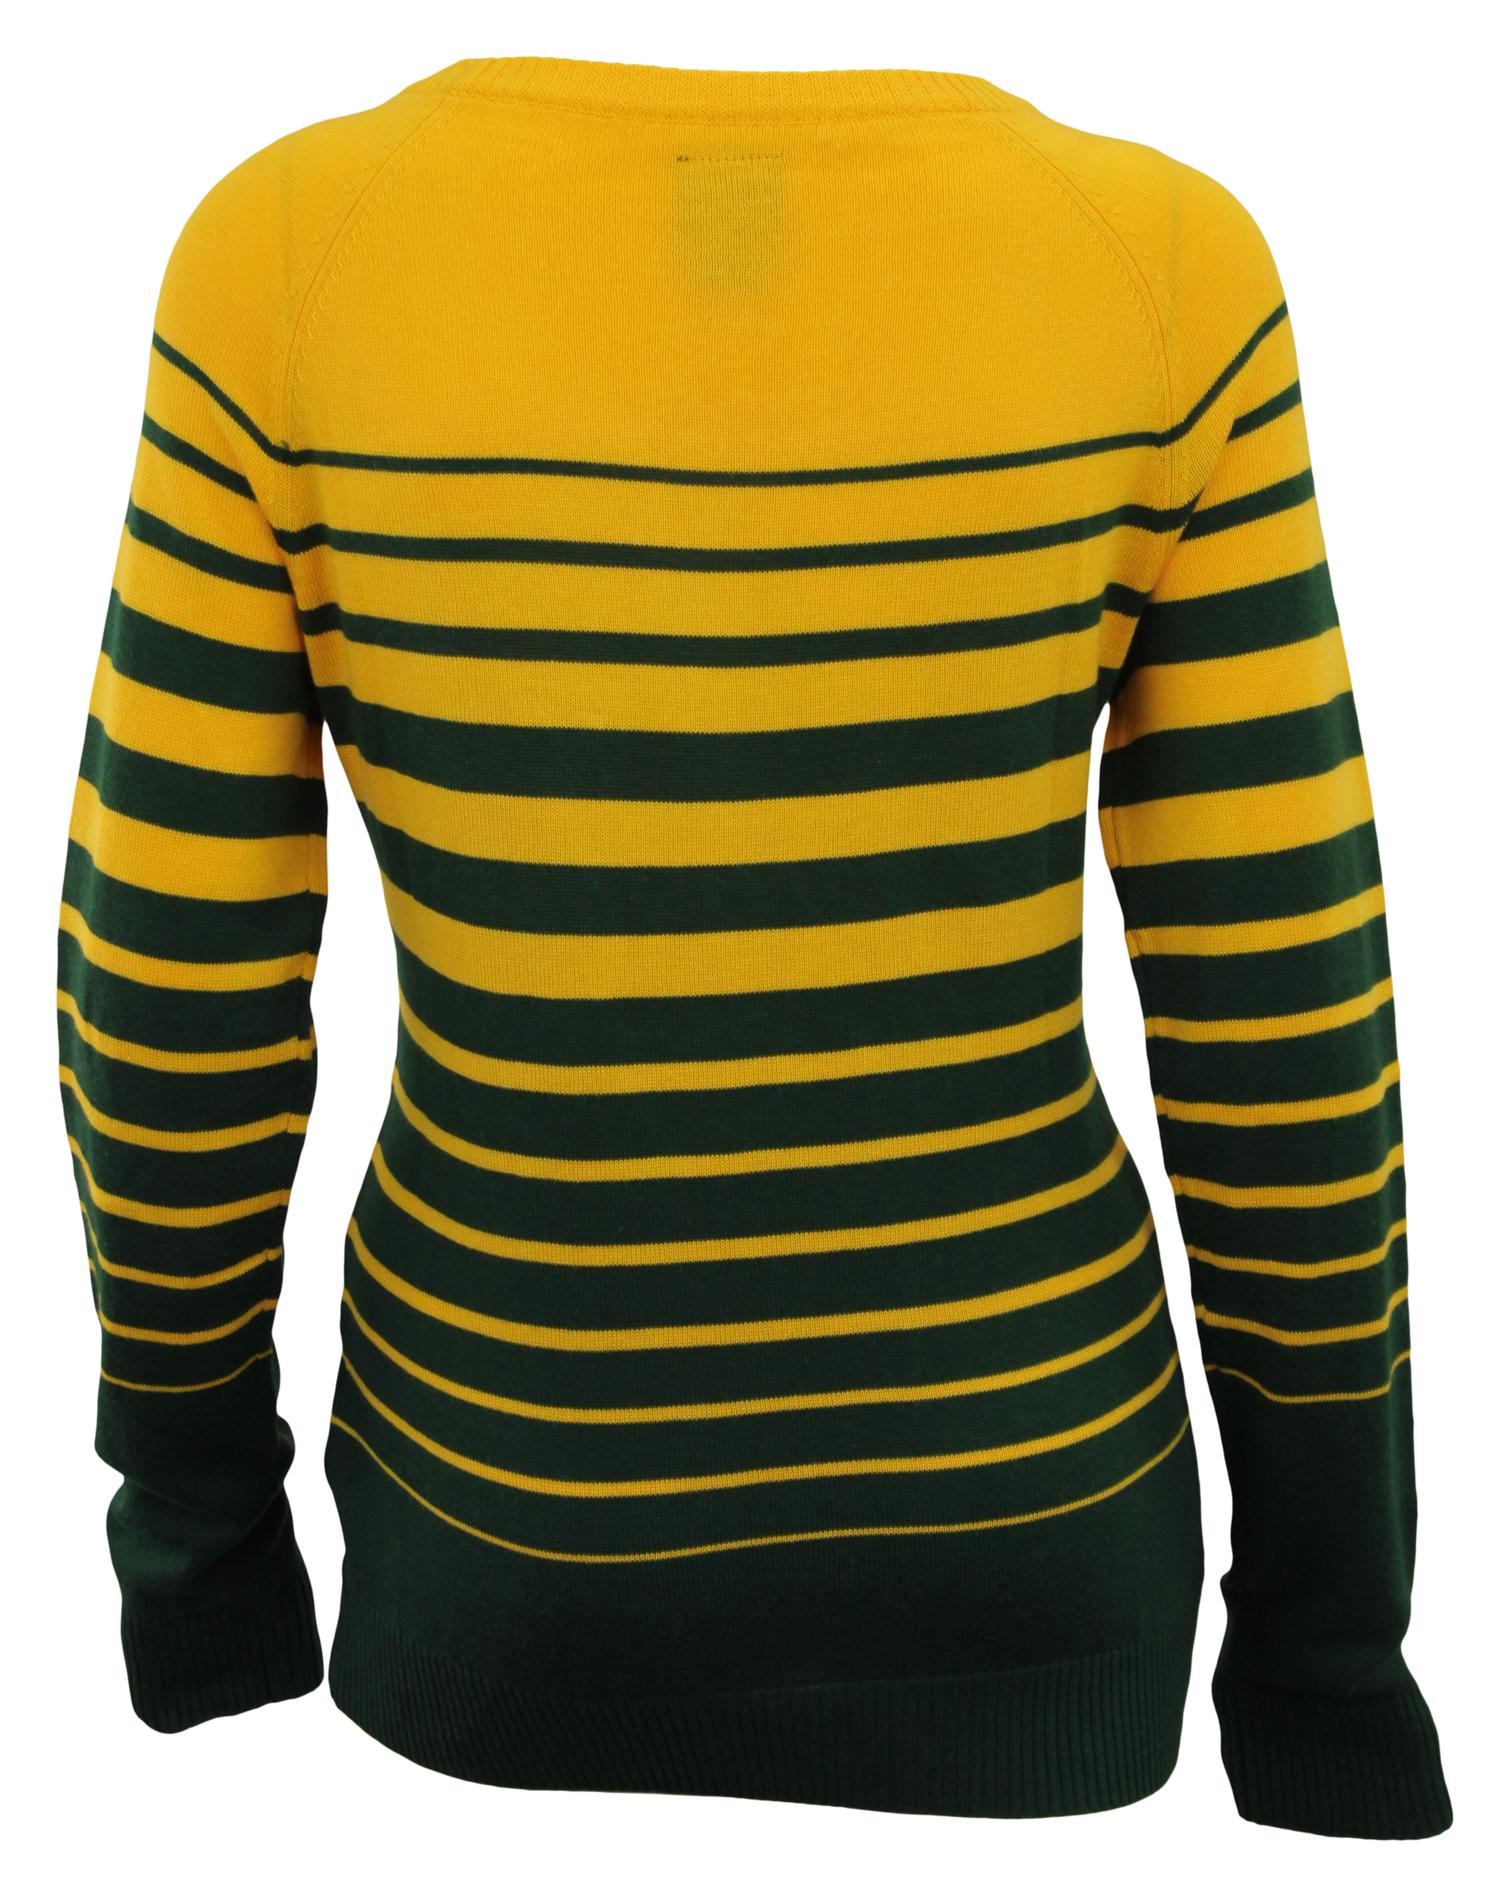 69370274 Details about Forever Collectibles NFL Women's Green Bay Packers Stripes  Scoop Neck Sweater